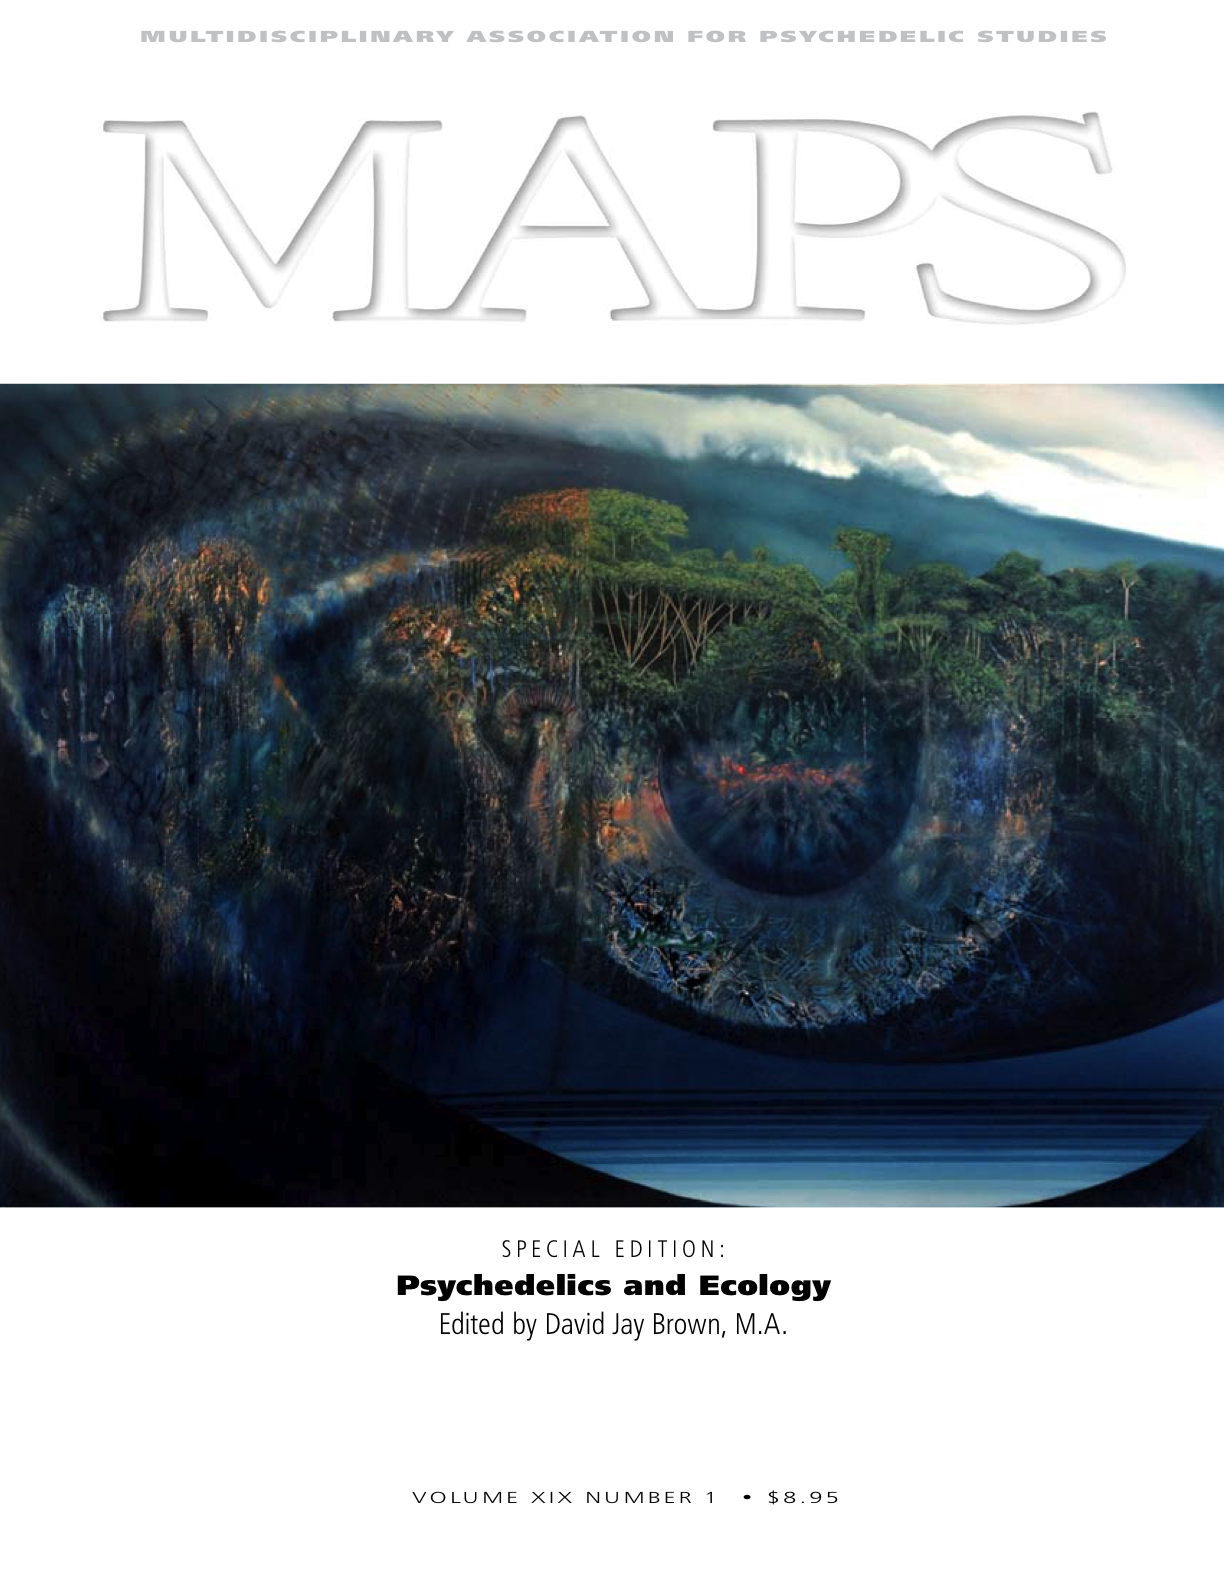 Spring 2009 Vol. 19, No. 1 Special Edition: Psychedelics and Ecology